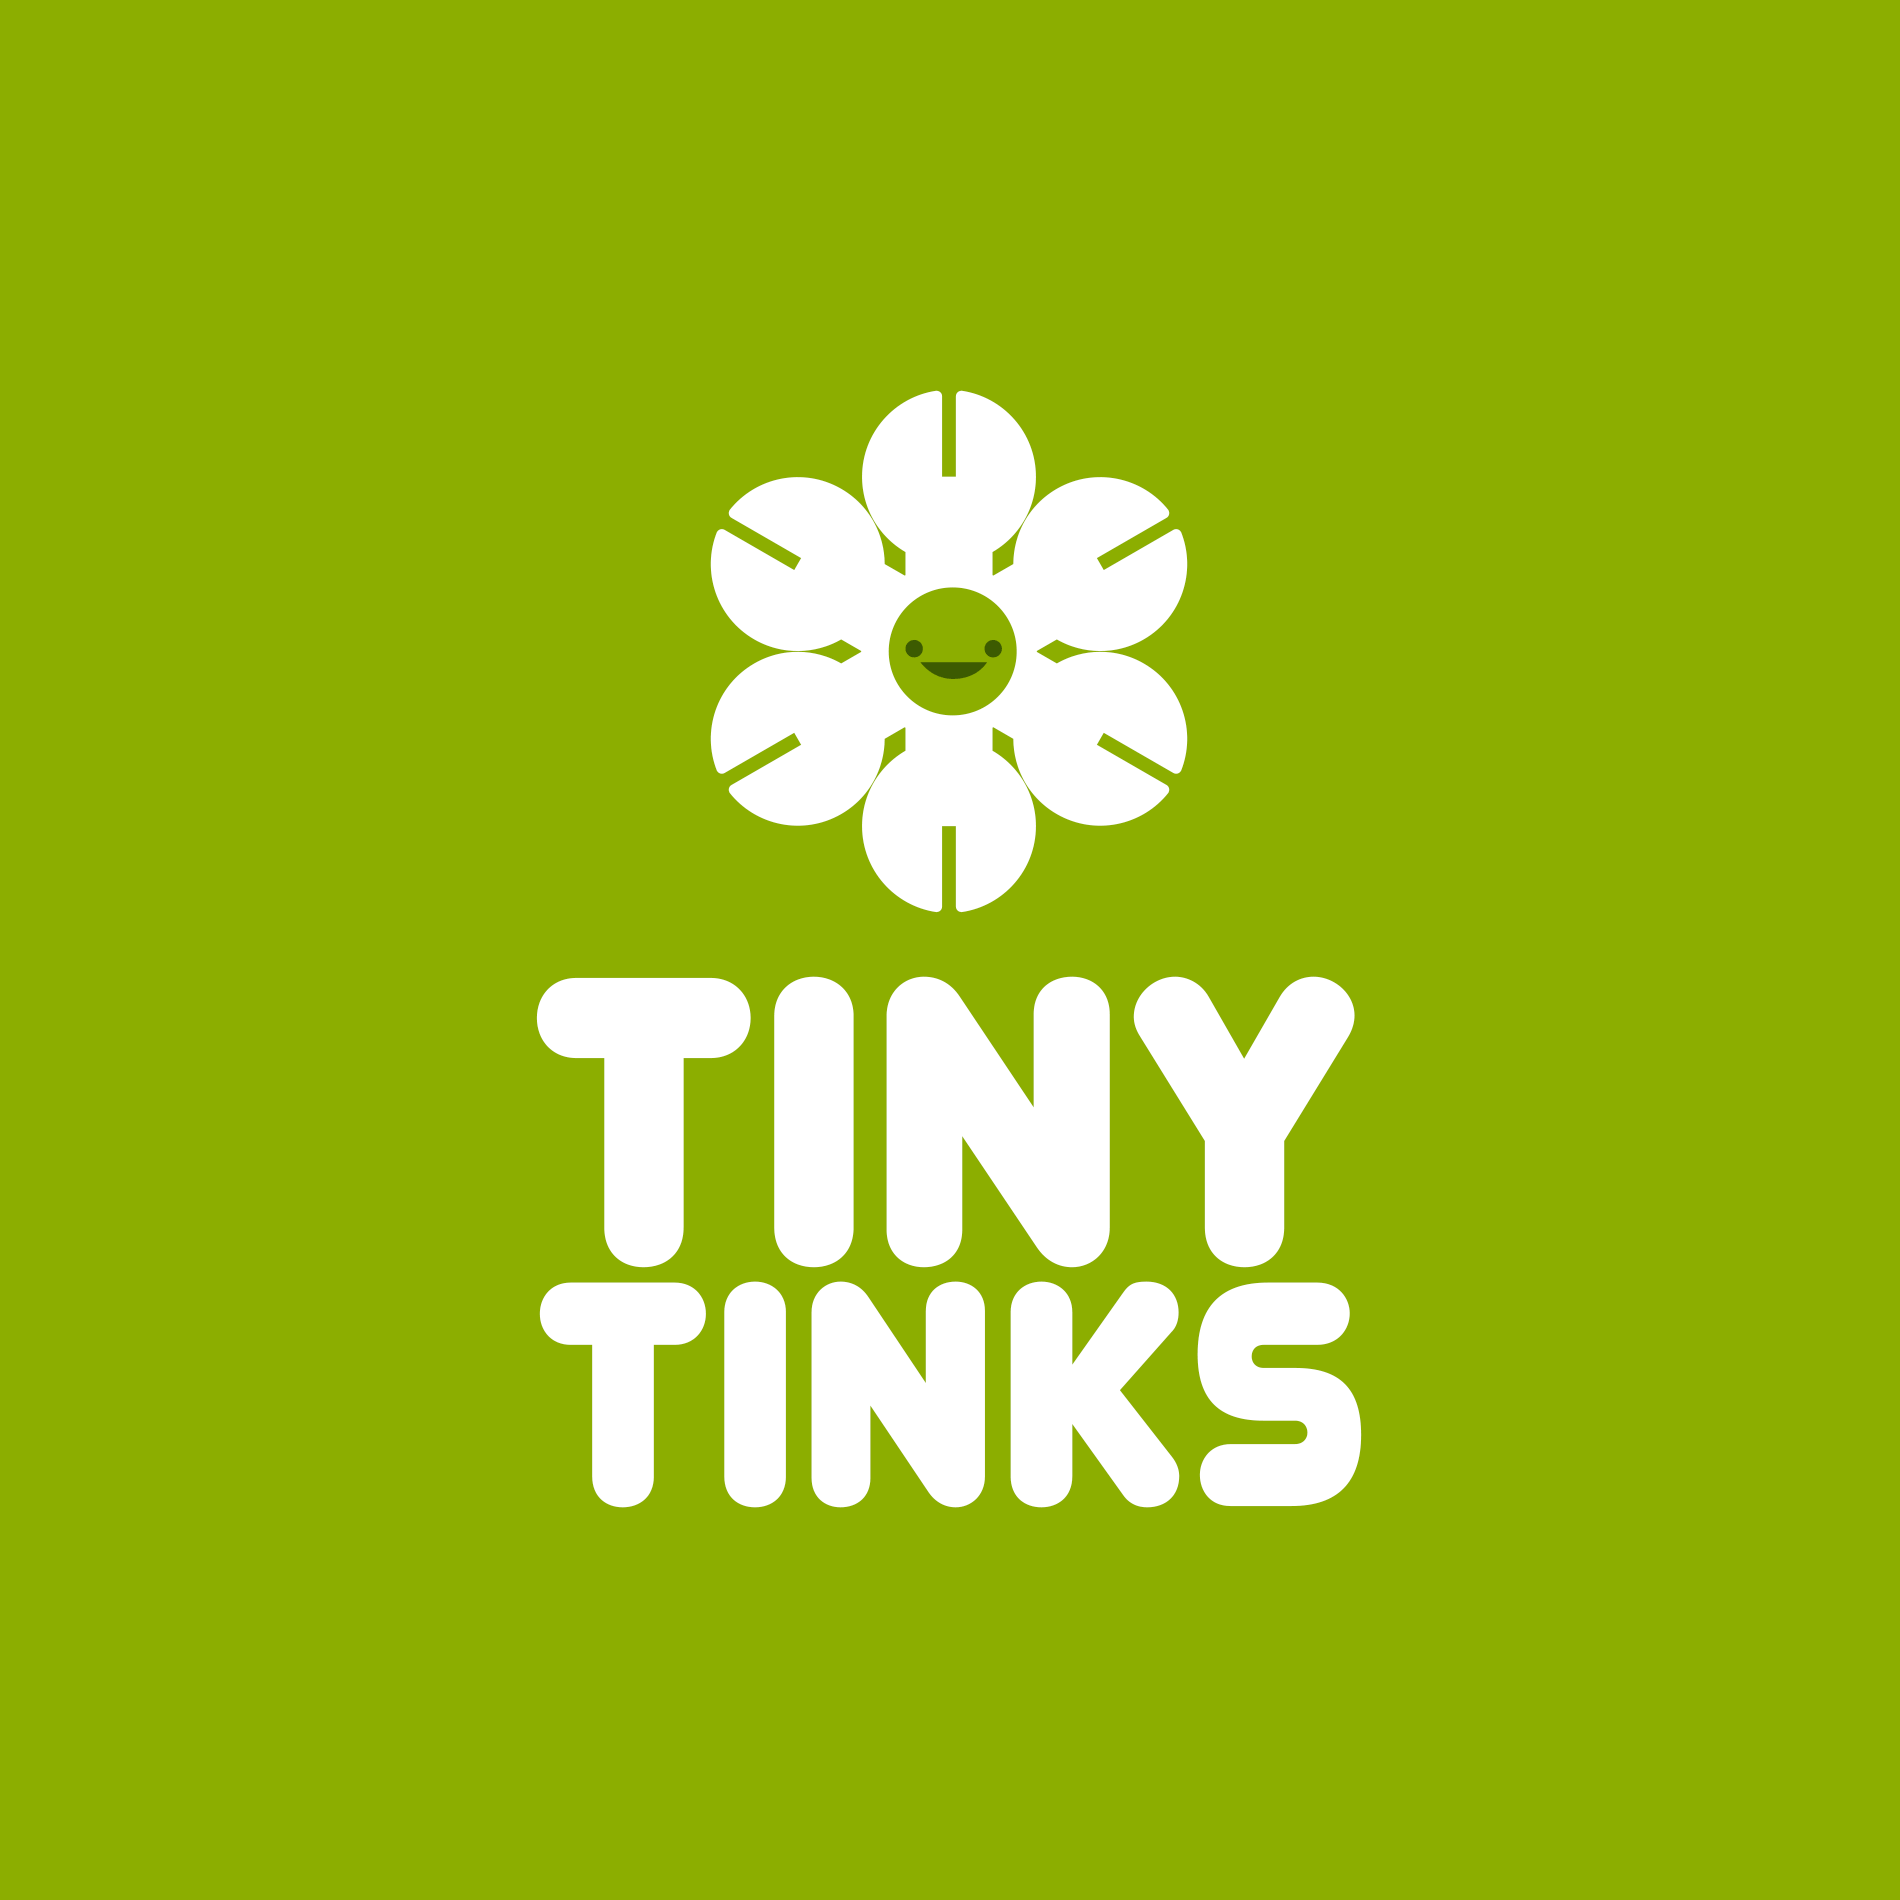 TINY_TINKS_13